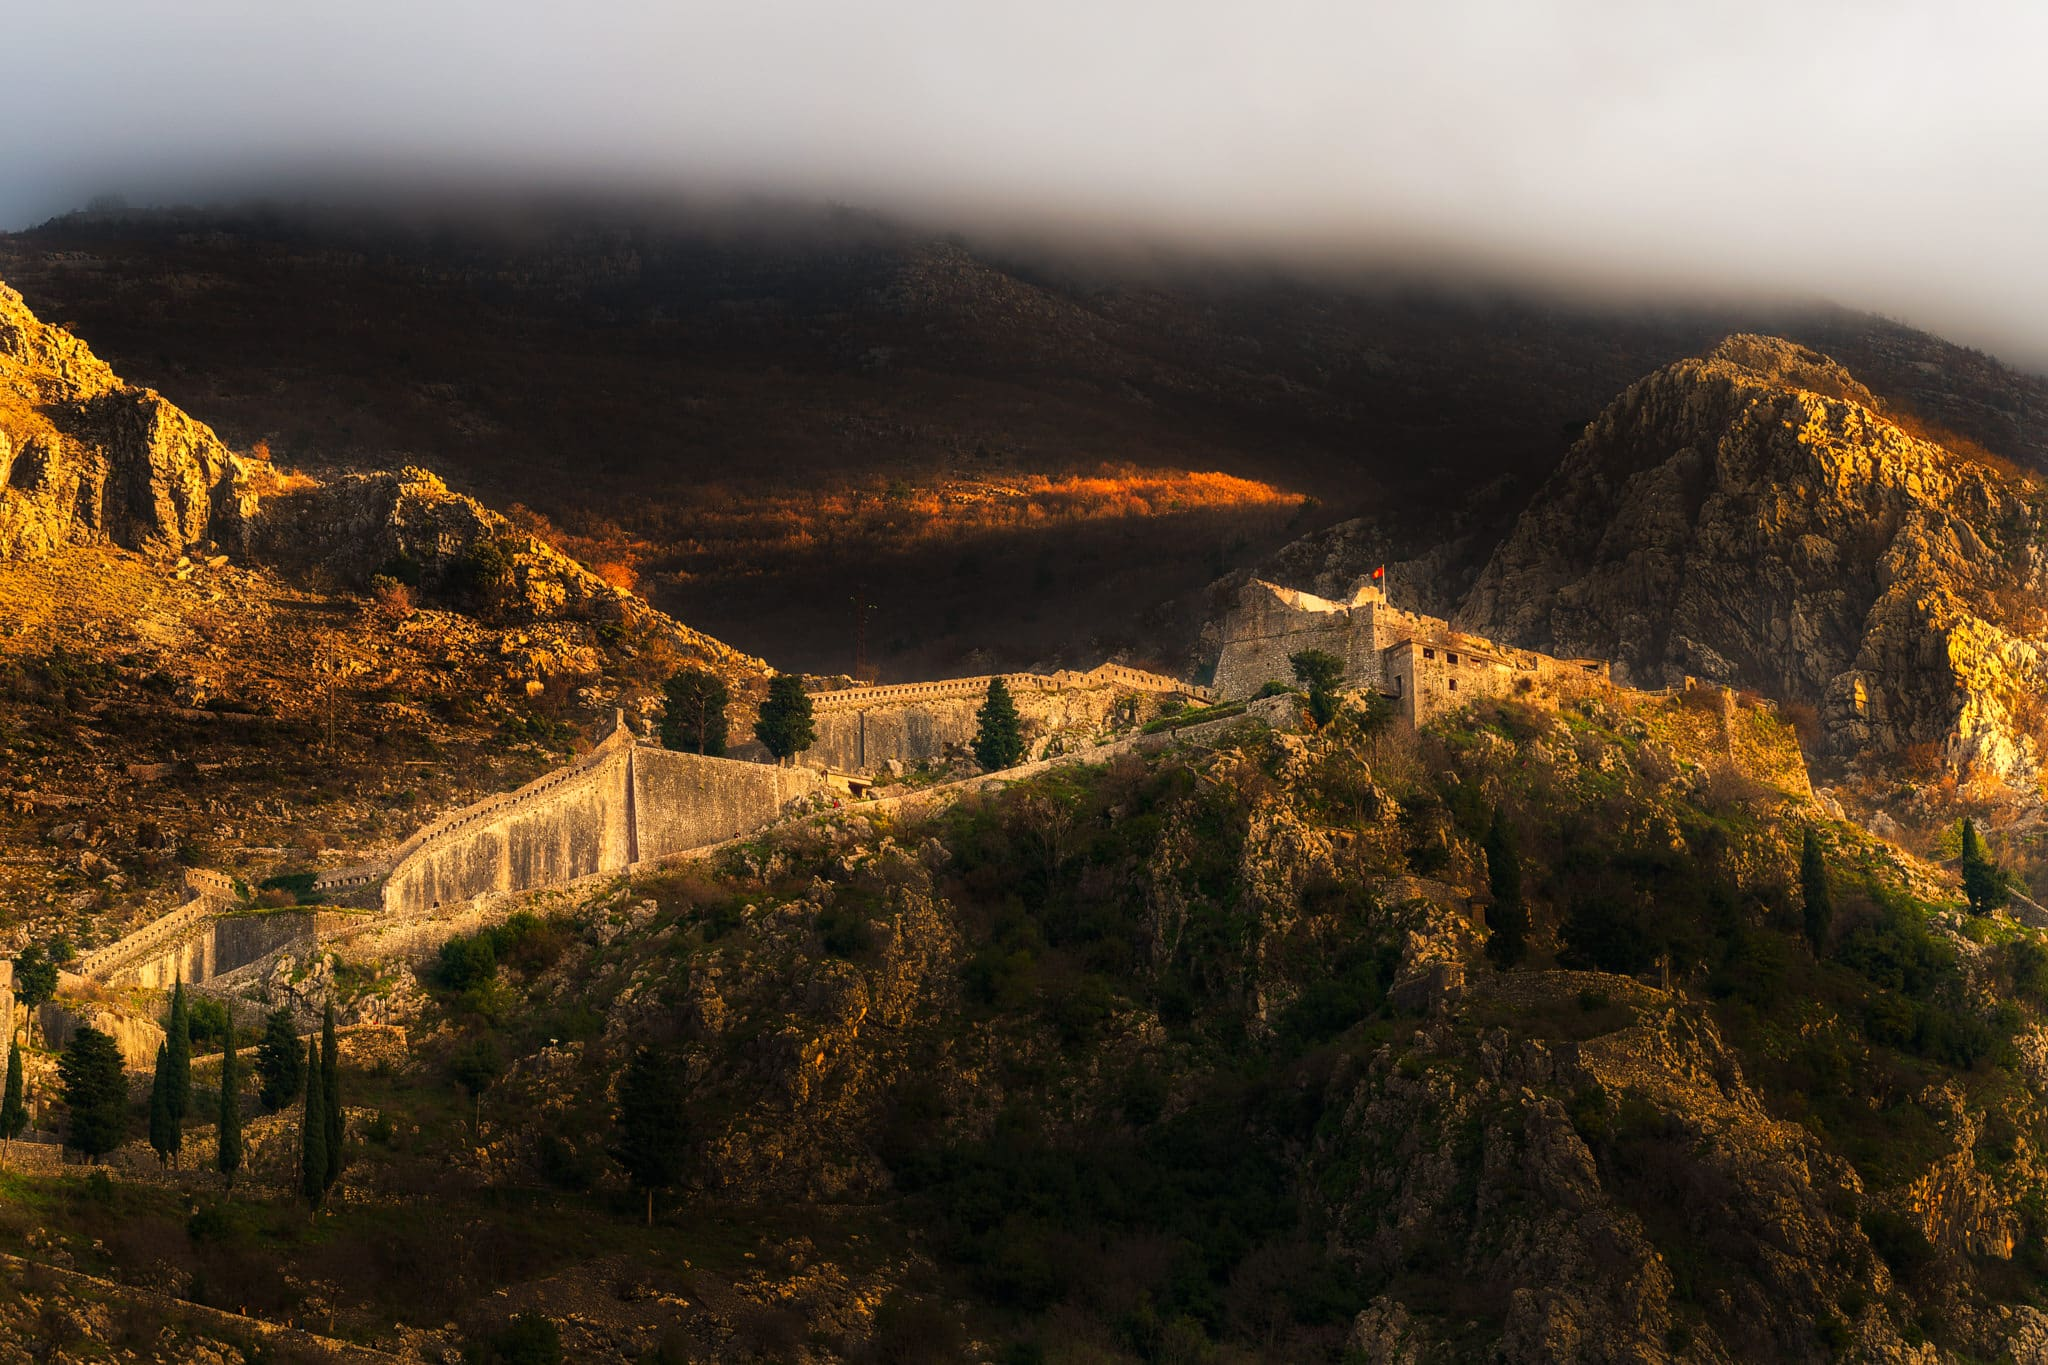 Panorama picture of the Kotor Castle in the clouds.